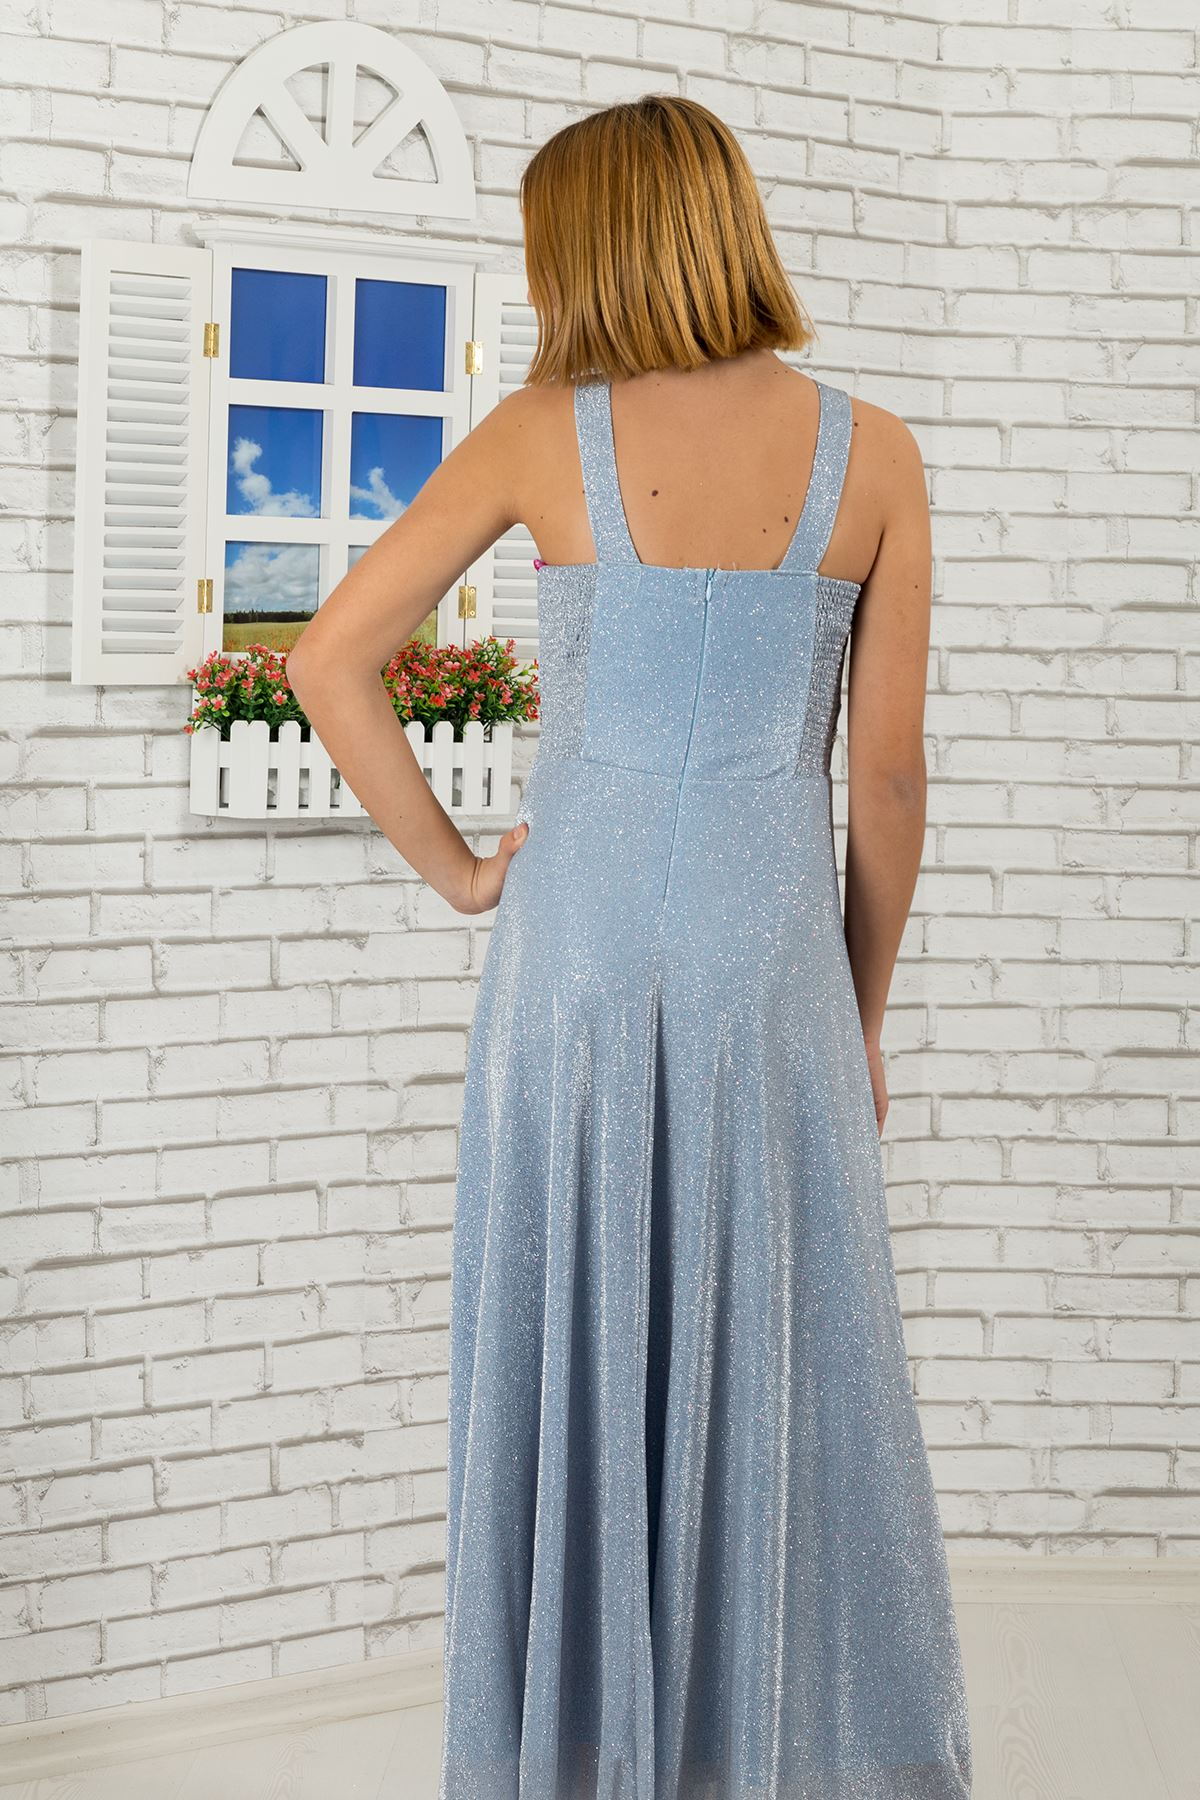 Waist and neck Stone detailed, silvery fabric girl children evening dress 469 baby blue